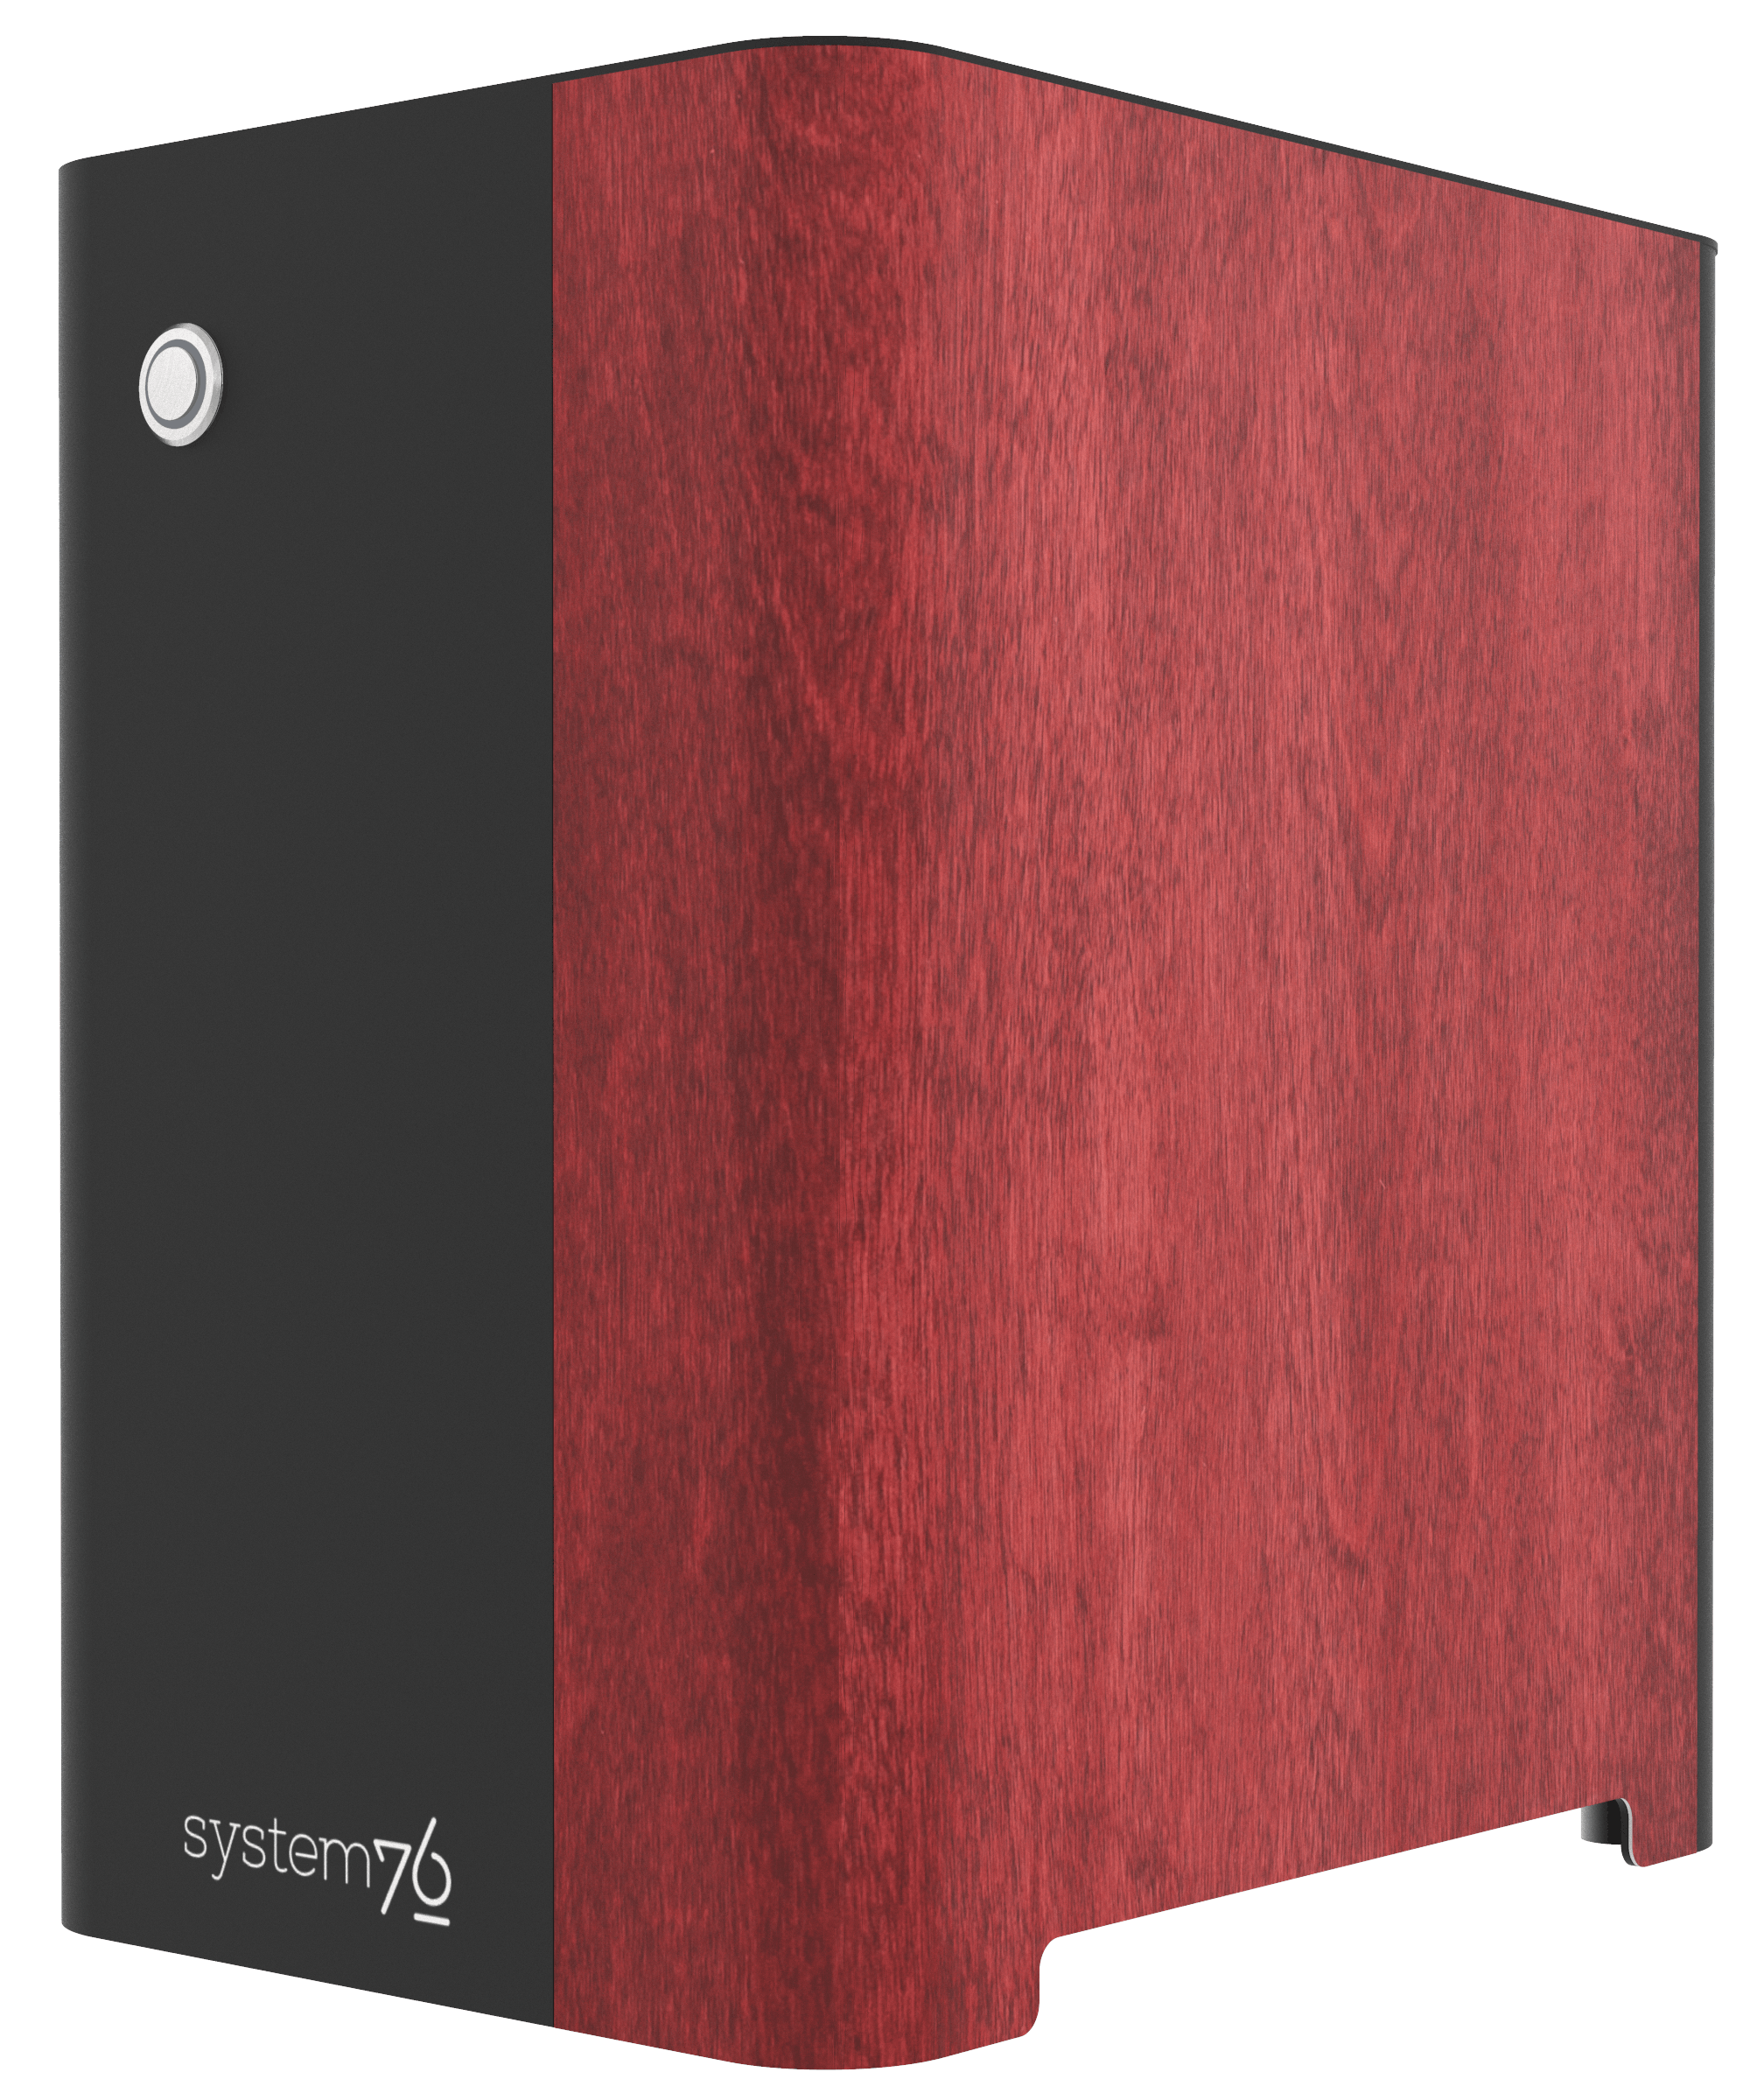 Side view of the machine showing birch veneer component, hand-polished, and stained red.